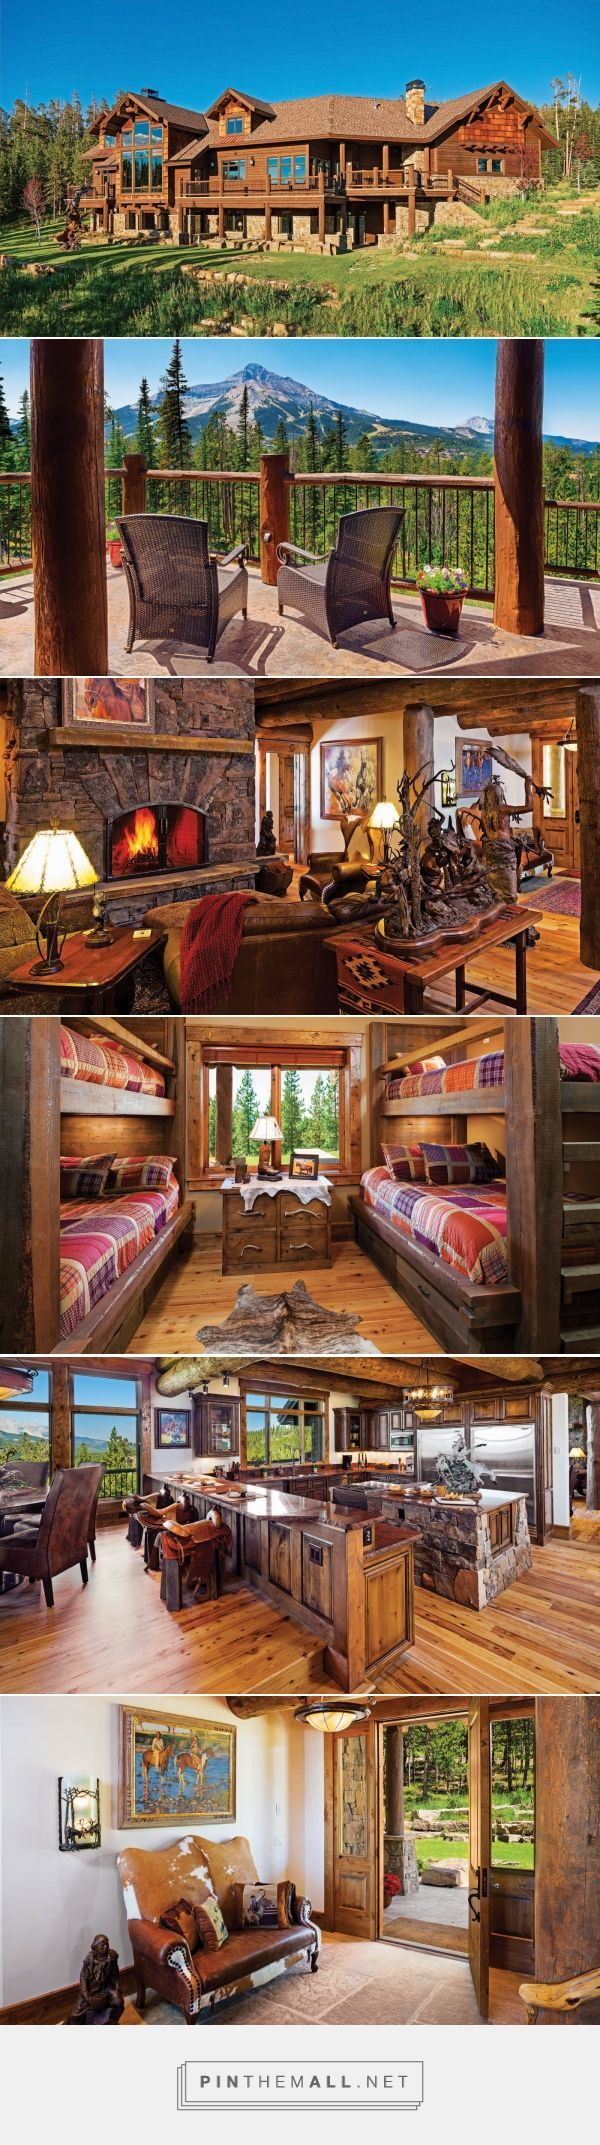 2147 best a western rustic home images on pinterest cowgirls